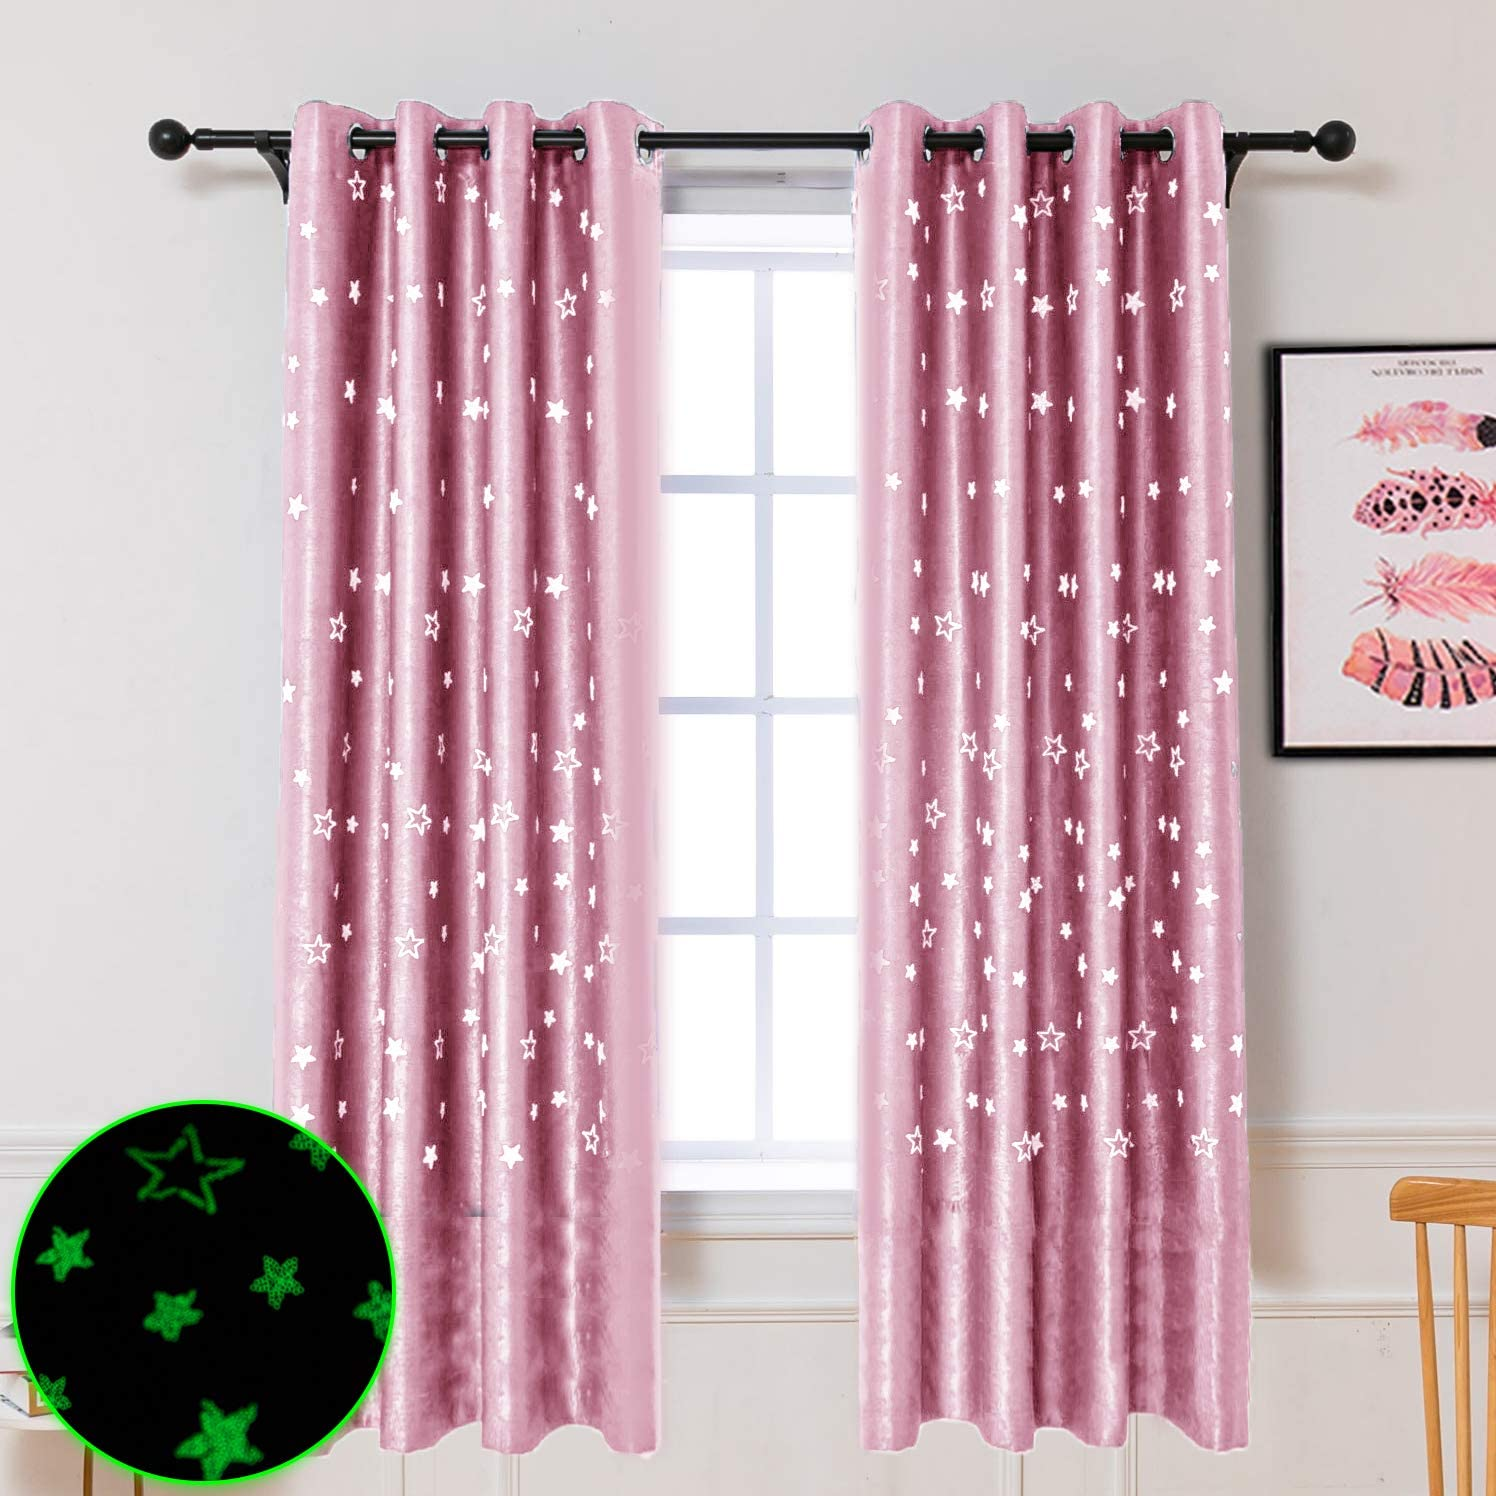 Hughapy Grow in The Dark Star Curtains Twinkle Stars Blackout Curtains for Kid s Bedroom – Grommet Thermal Insulated Room Darkening Window Curtains, Set of 2 Panels 52 x 84 Inch,Pink